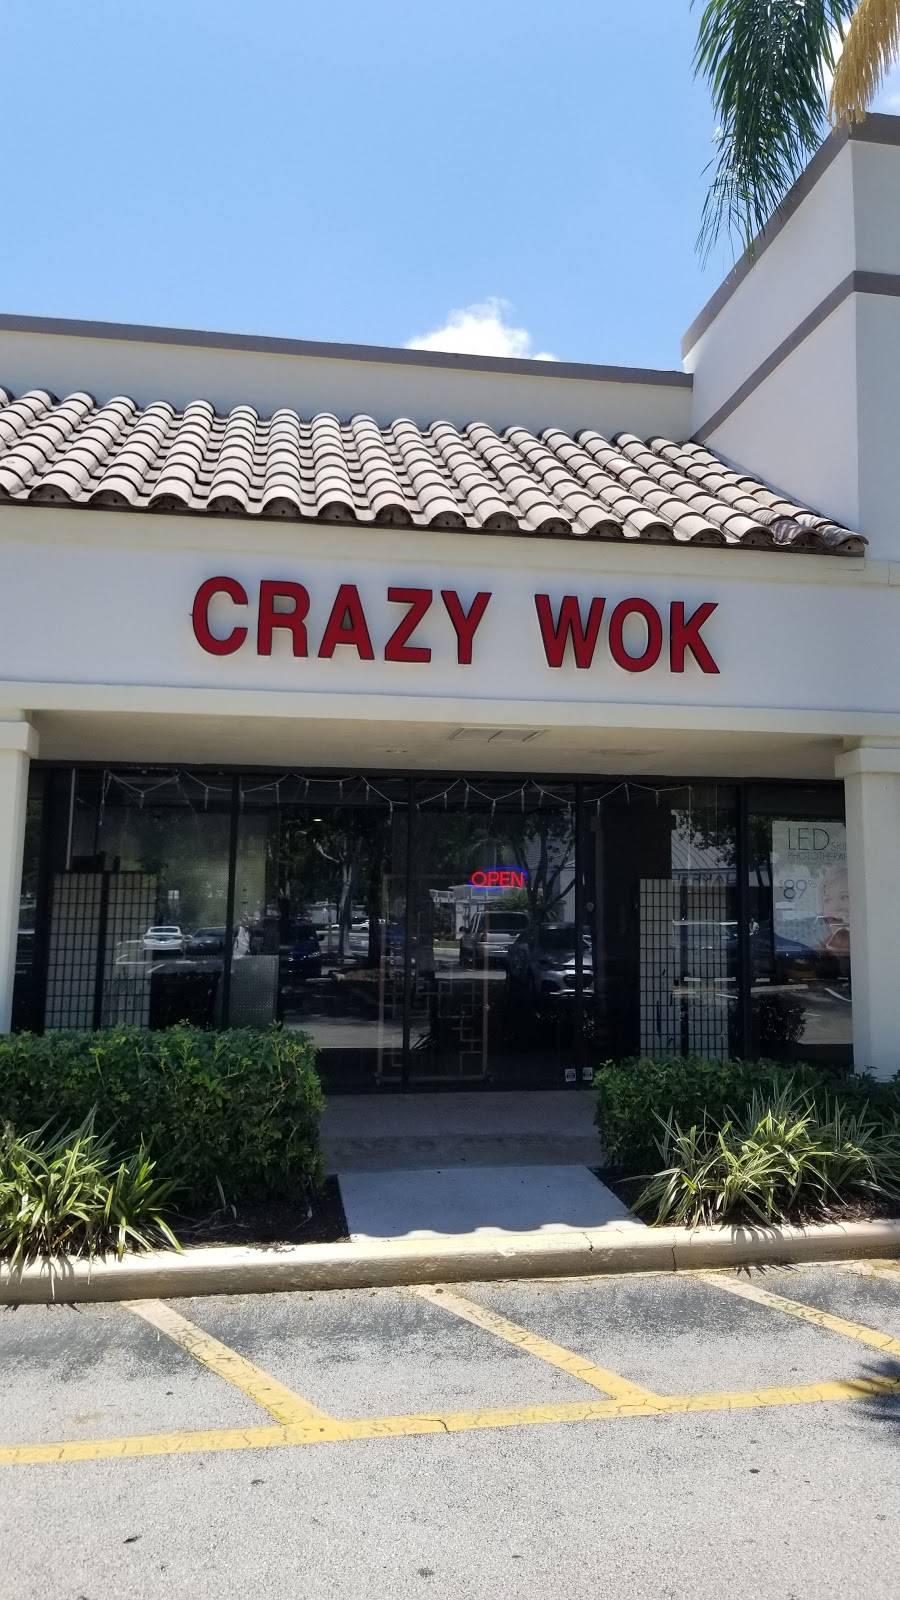 Crazy Wok | meal delivery | 2392 N Federal Hwy, Fort Lauderdale, FL 33305, USA | 9546303588 OR +1 954-630-3588